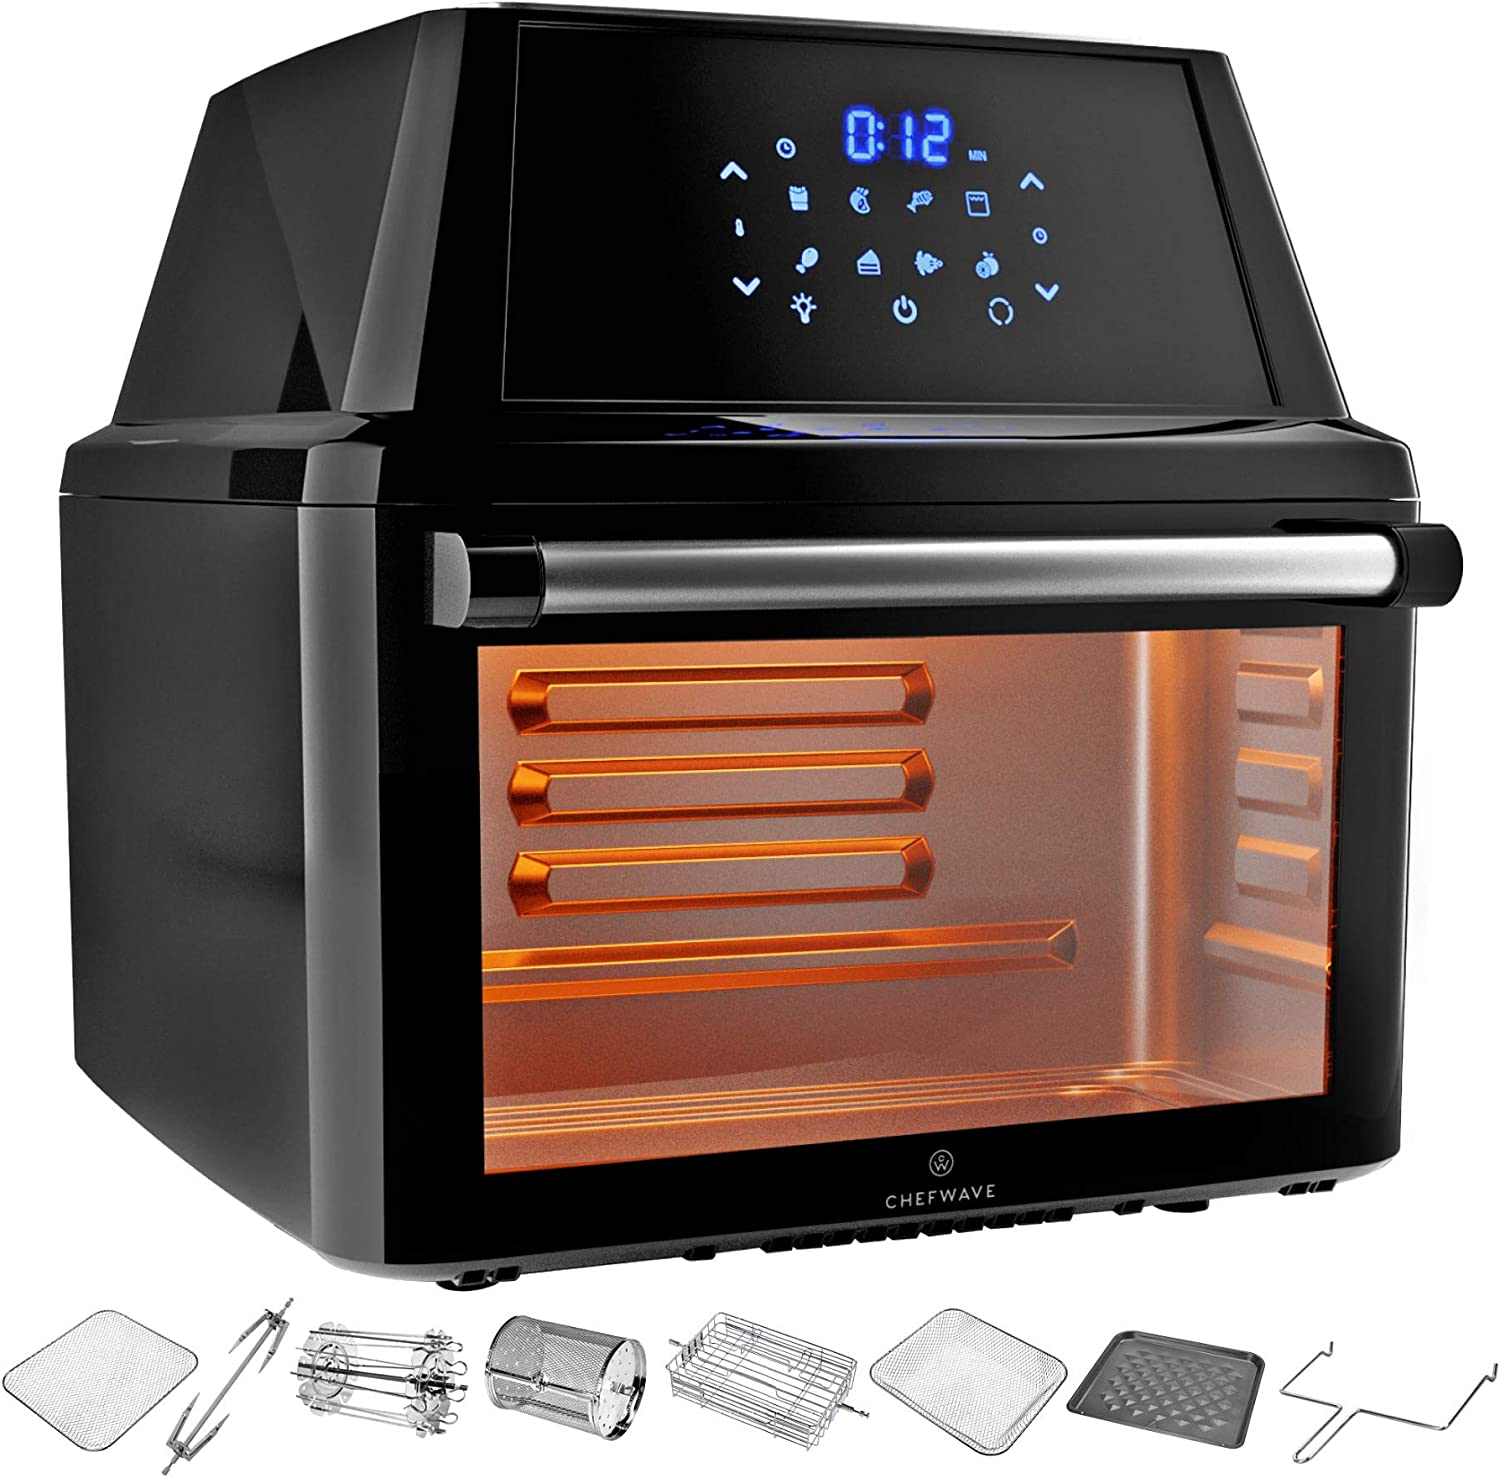 ChefWave Air Fryer Oven - 16 Quart Air Fryer, Rotisserie, Dehydrator Combo Oven - Deluxe Countertop Cooker with 10 Skewers, Baking Steak and Fish Cage, Rack, Trays, Cooking Accessories, Recipes